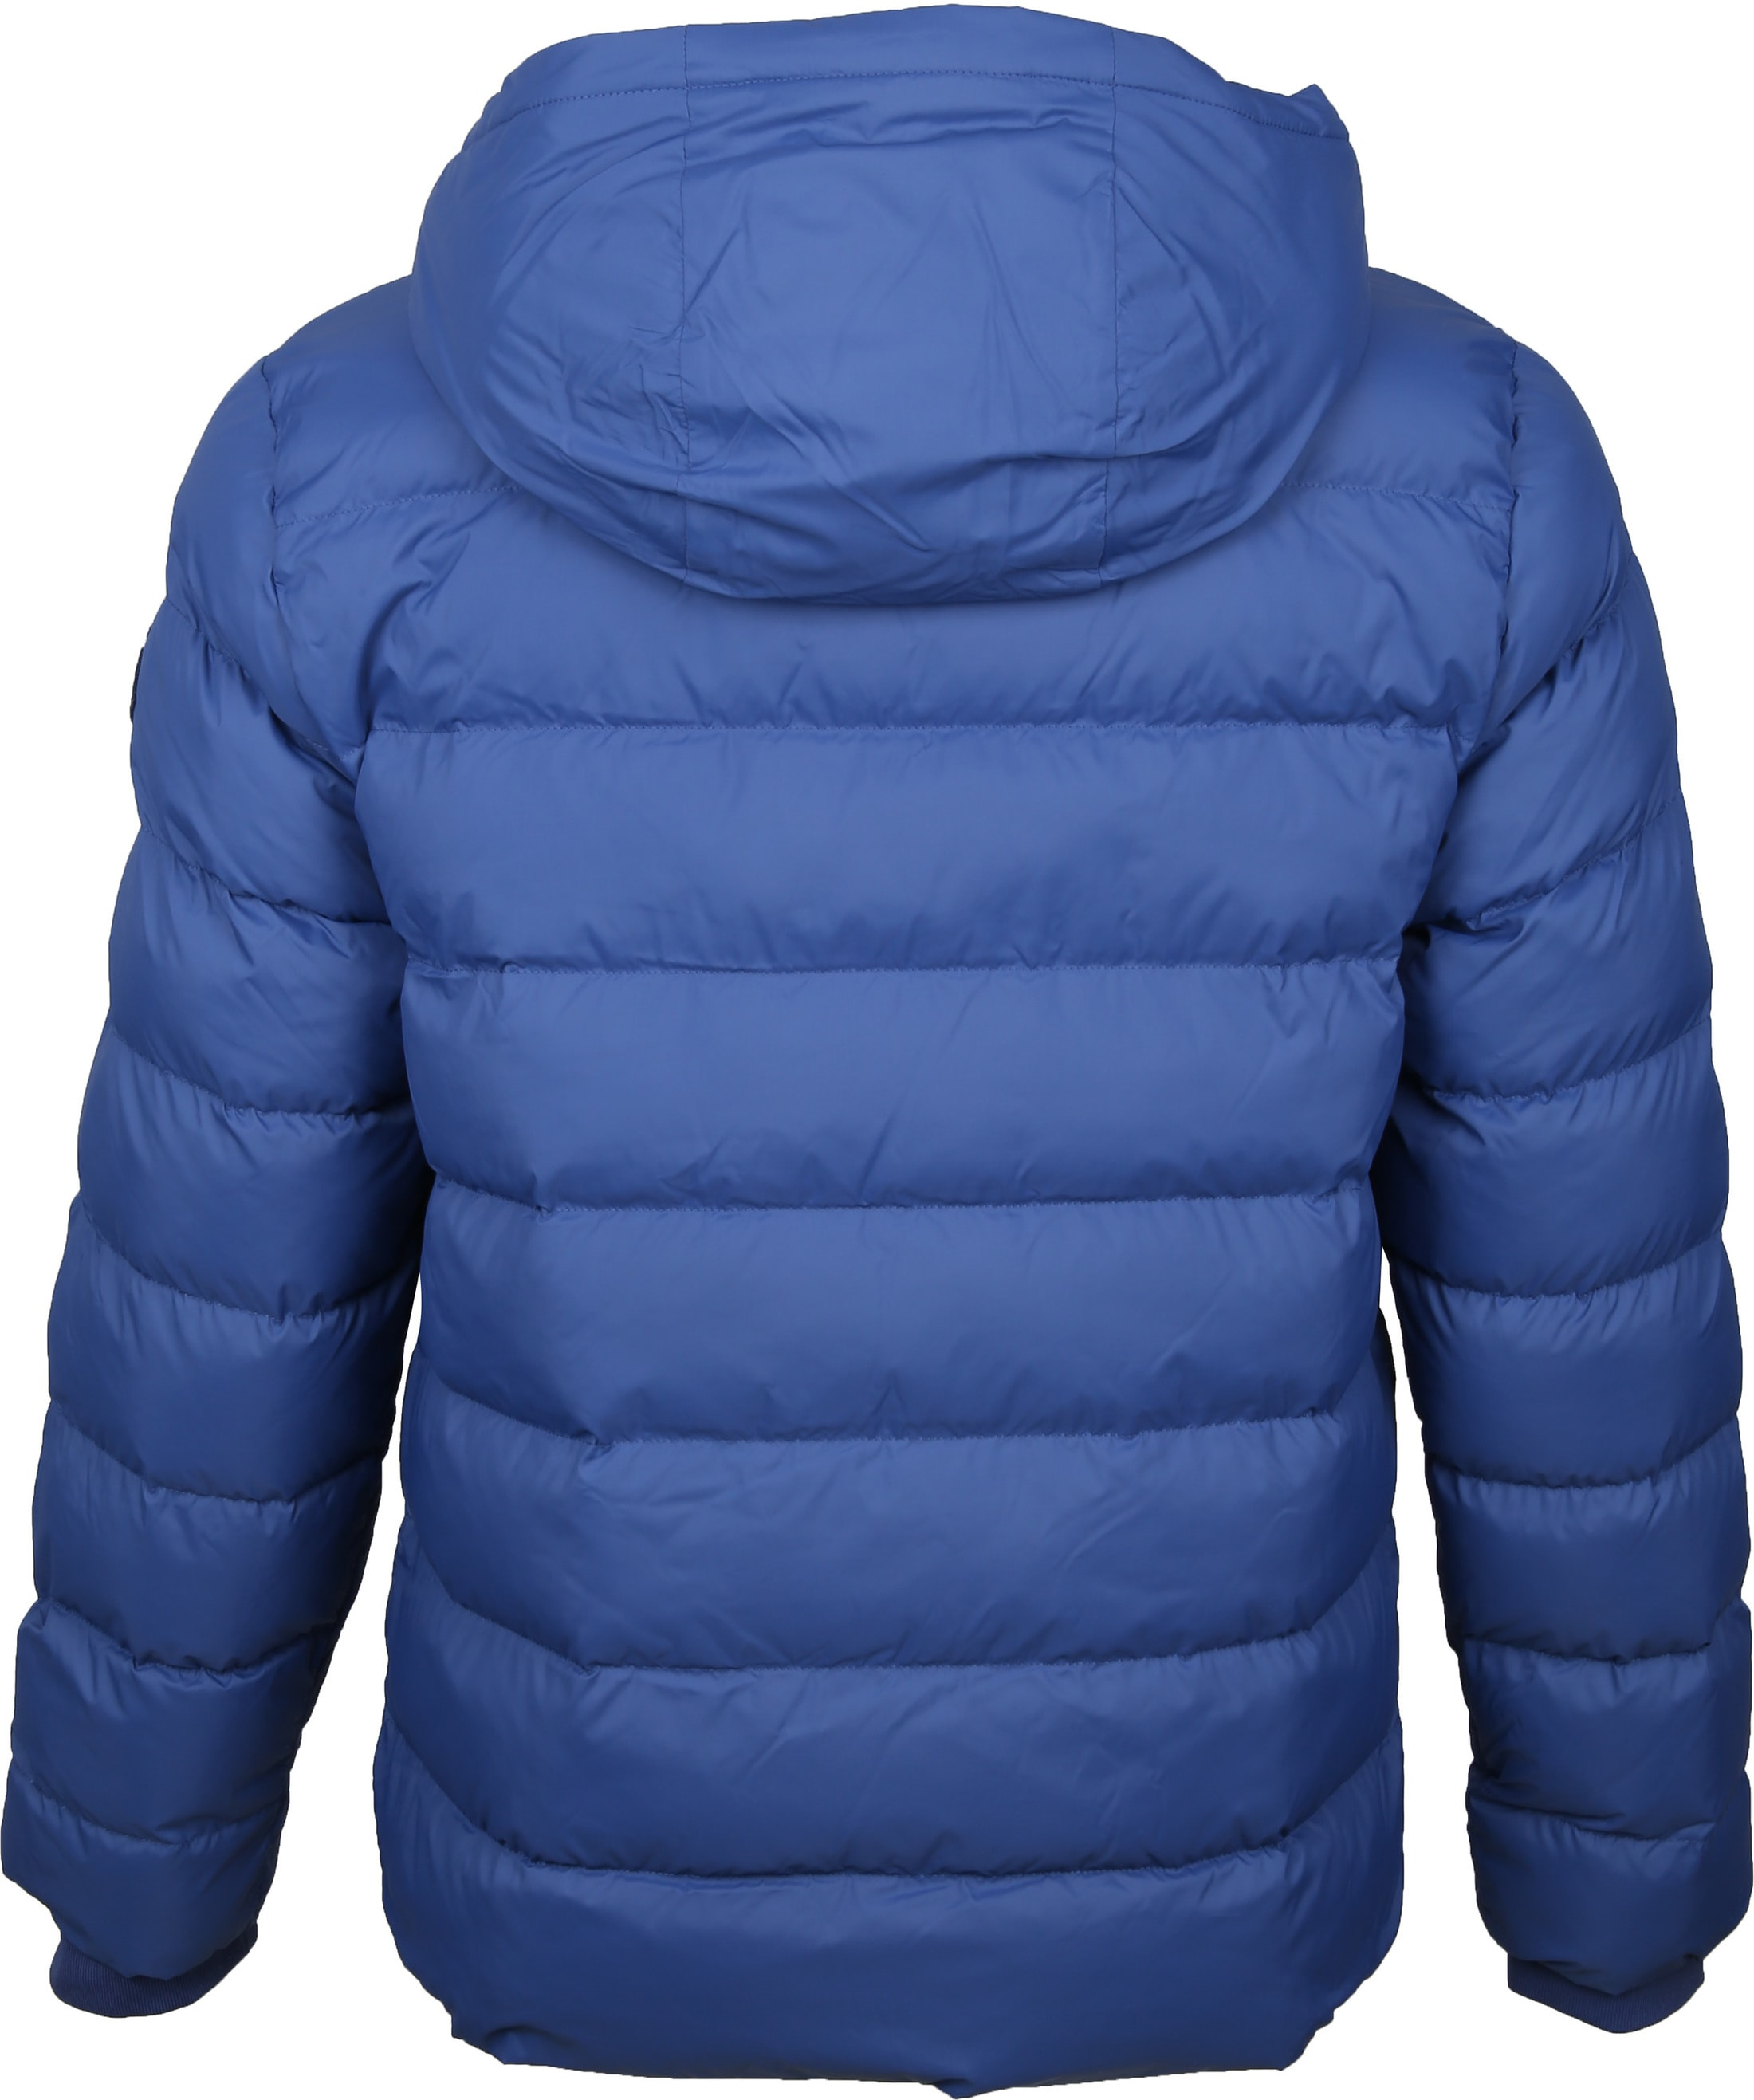 Gant Active Cloud Jacket Blauw foto 5